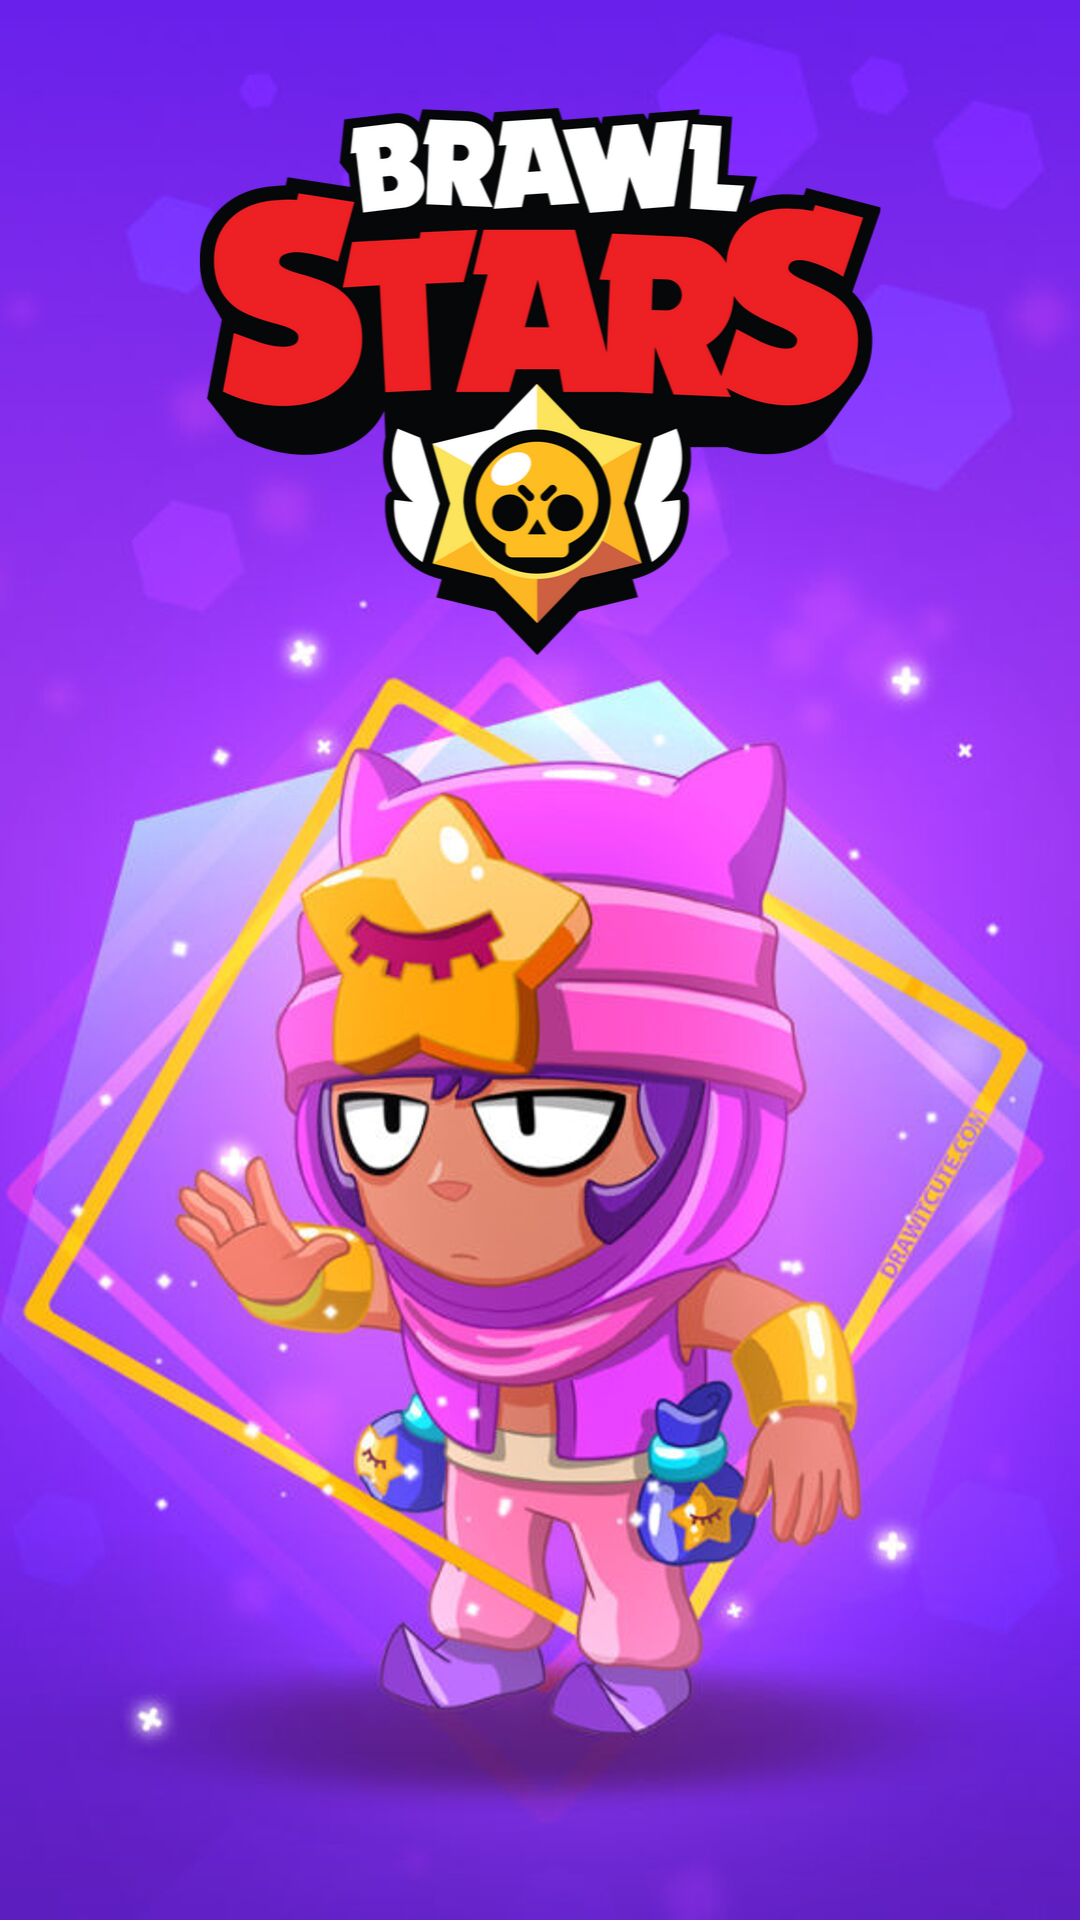 New Brawler Sandy Brawl Stars Free Brawl Stars Gems 2020 How To Get Brawl Stars Hack Free Gems Generator No Human Verification To In 2020 Brawl Star Wallpaper Stars